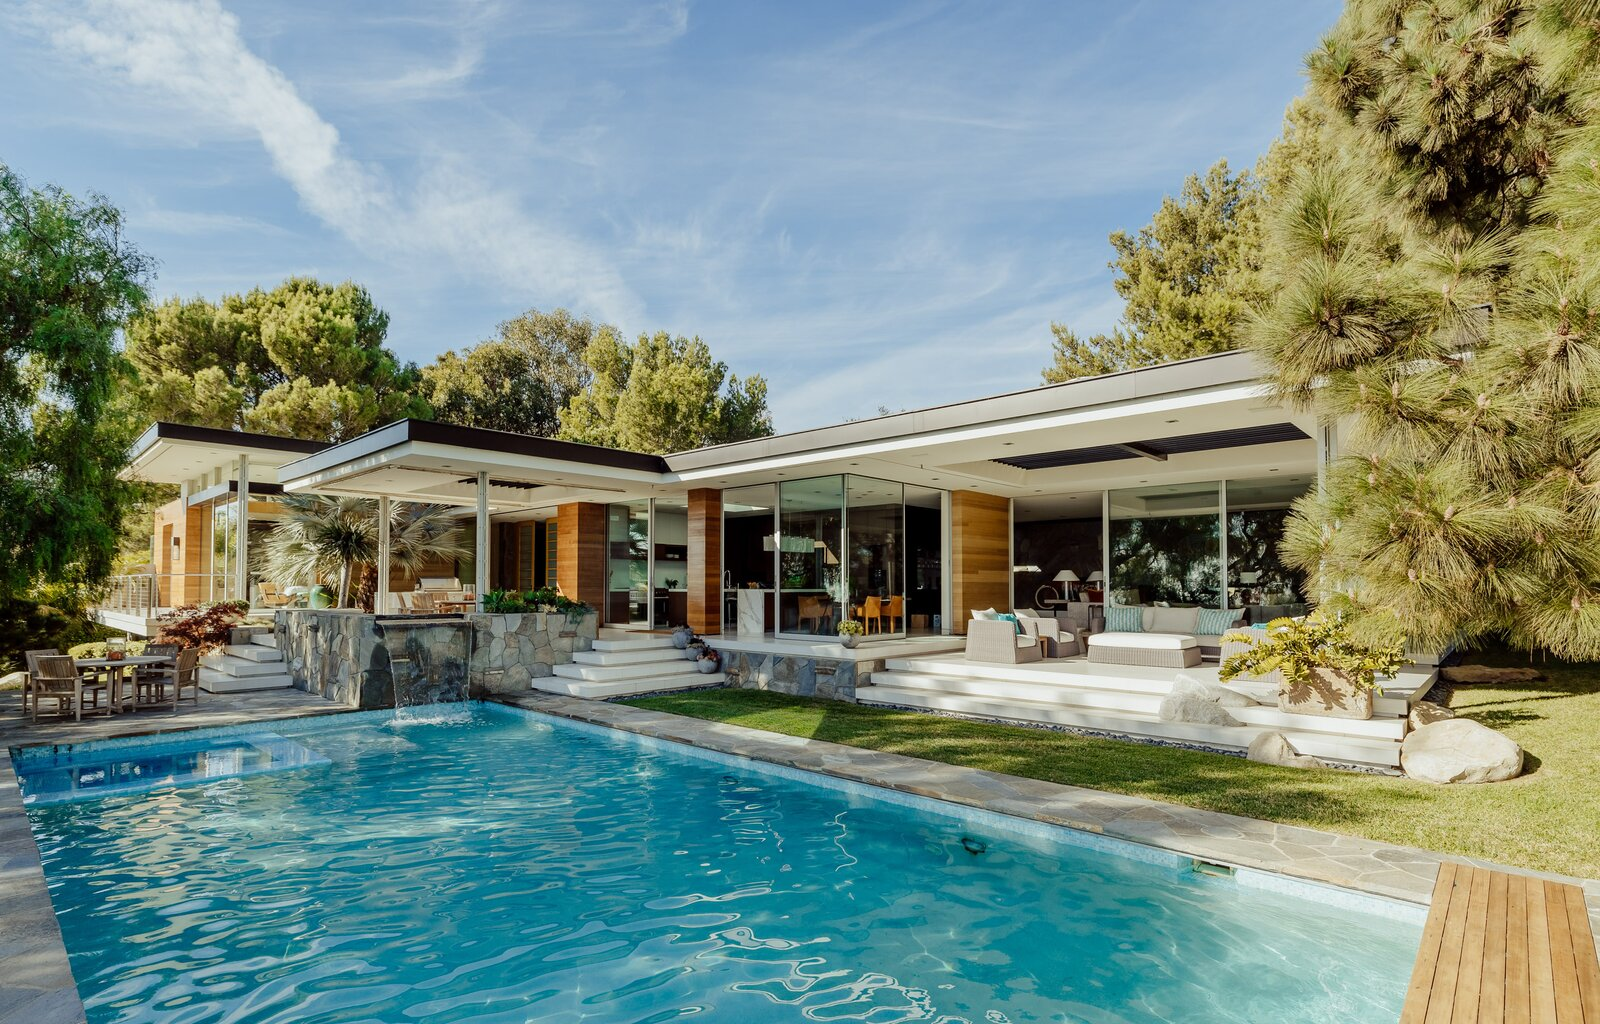 A Midcentury Home in Malibu Shines After a Radiant Renovation